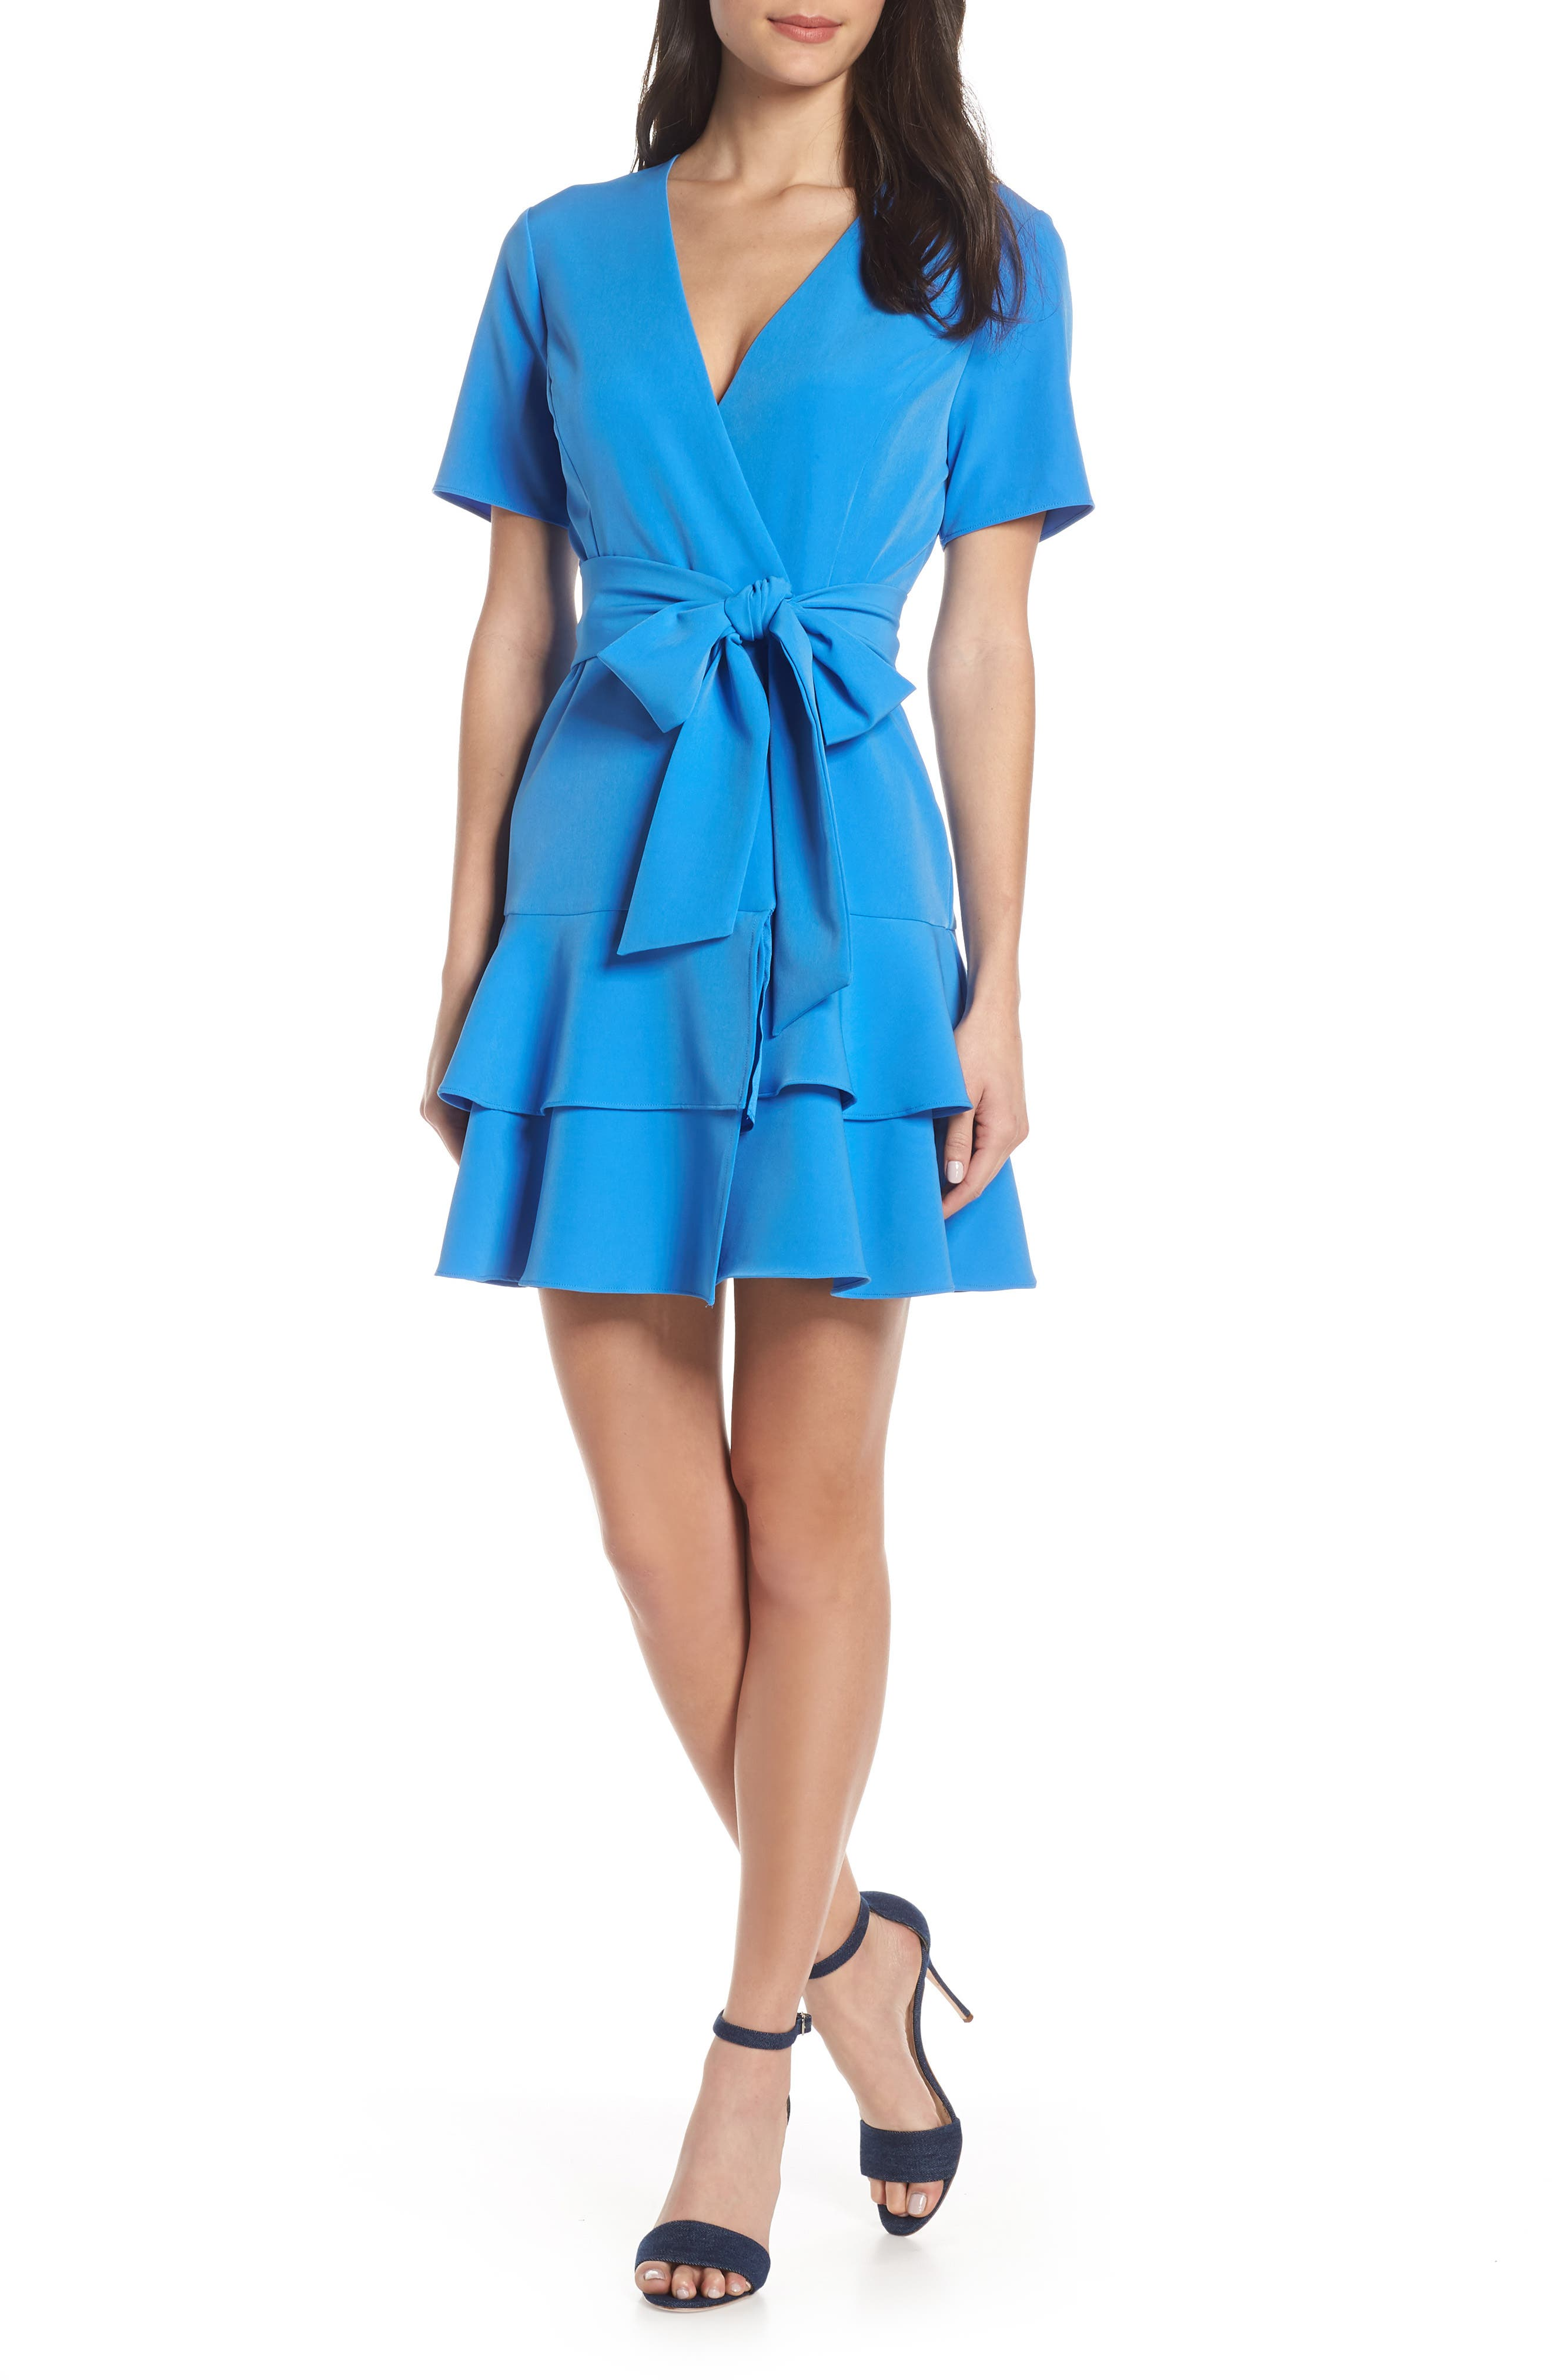 CHARLES HENRY Ruffle Tiered Wrap Dress, Main, color, DENIM BLUE